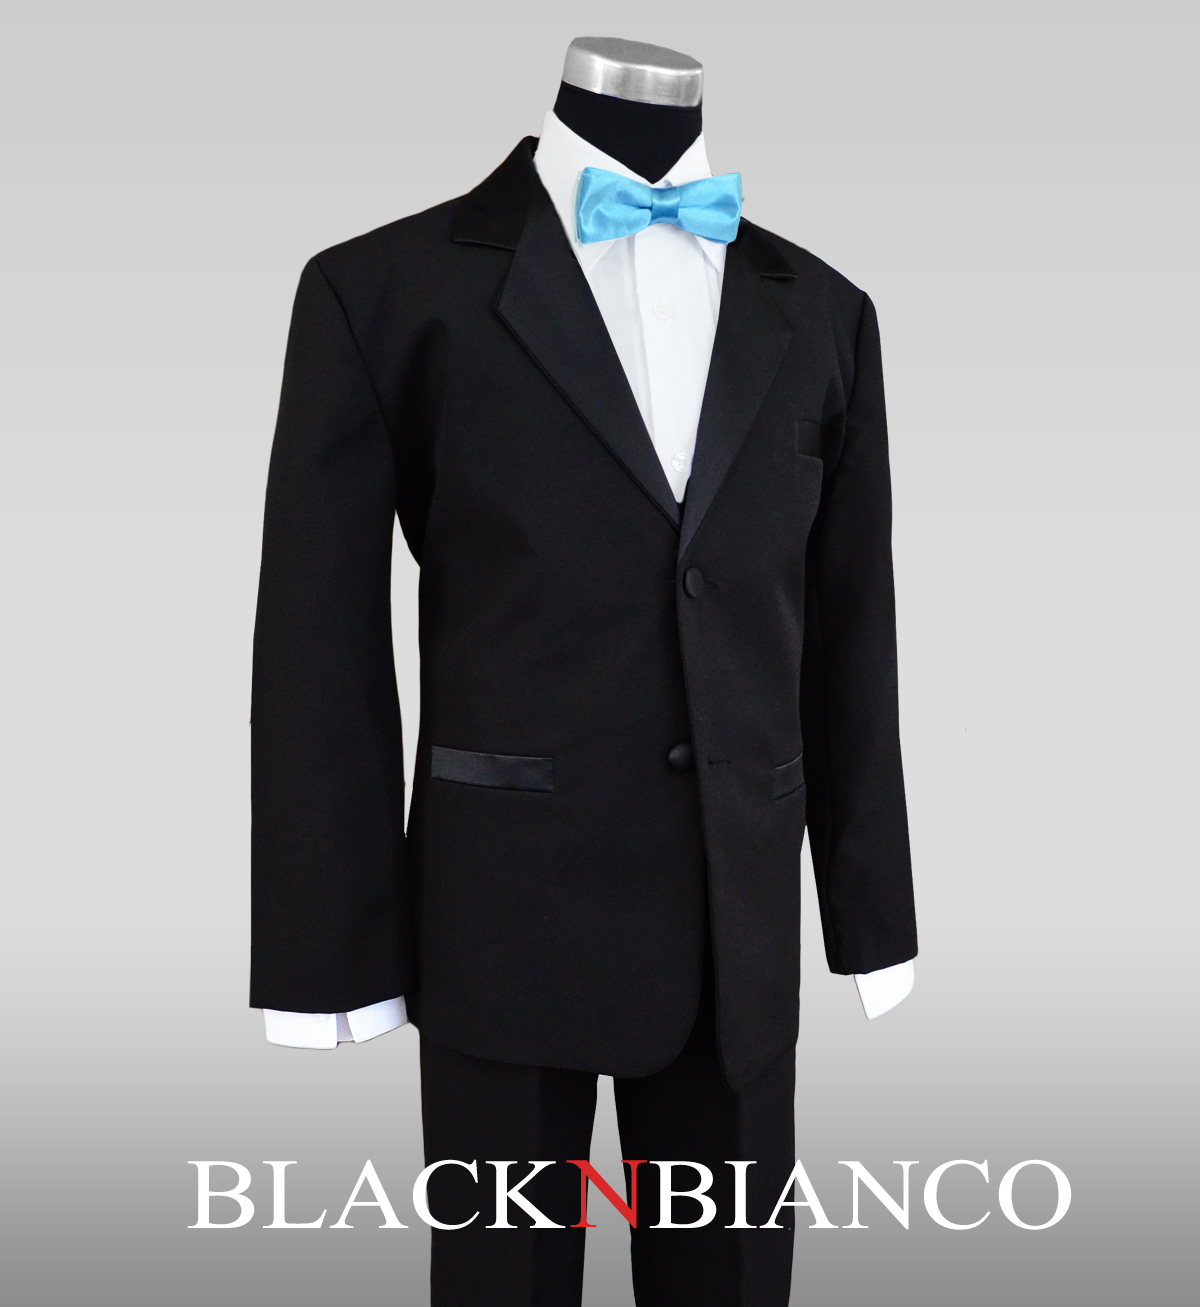 Boys Tuxedos in Black with Baby Blue Bow Tie